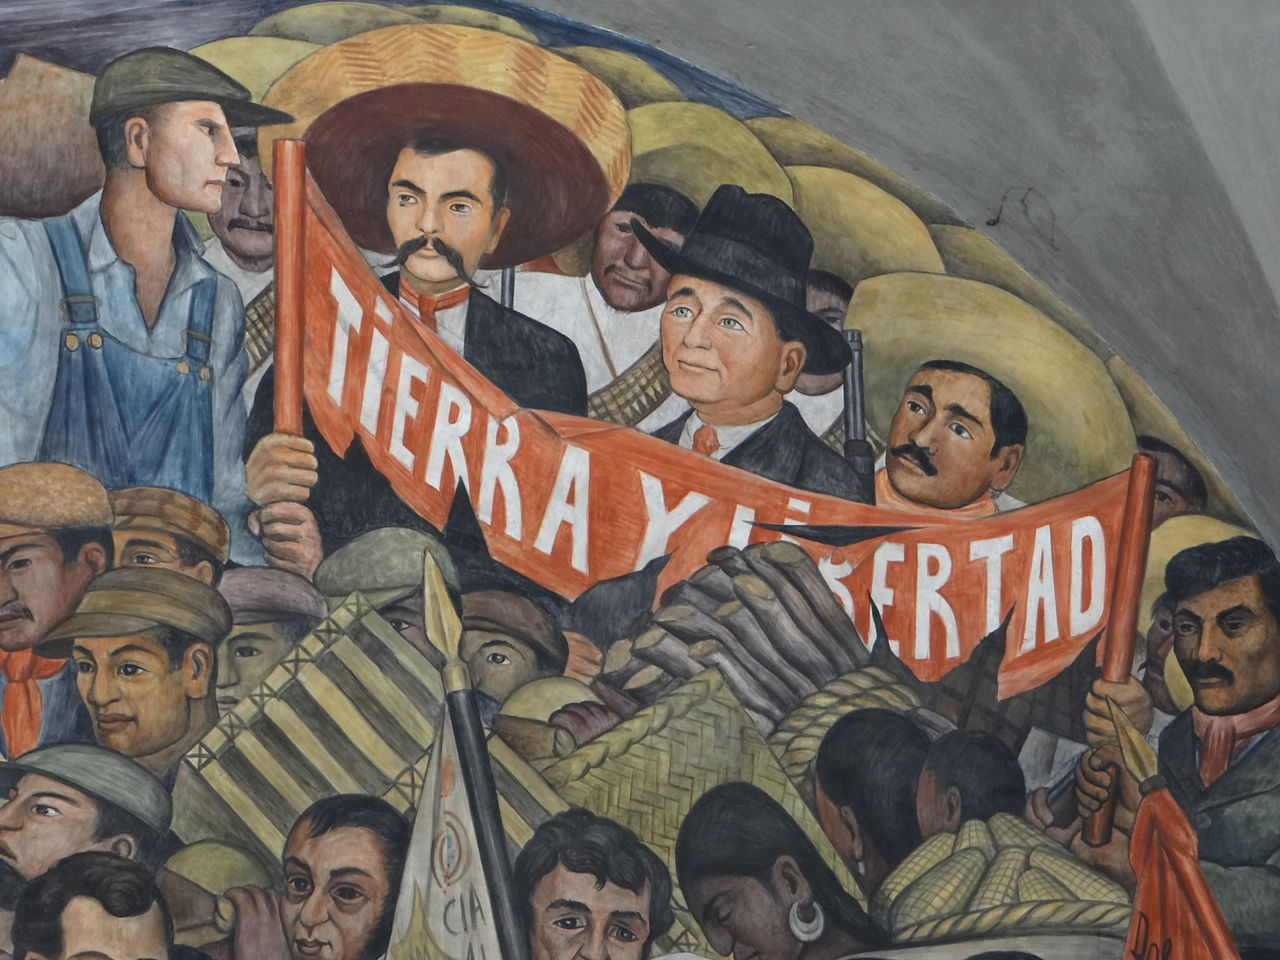 archivo diego rivera mural featuring emiliano